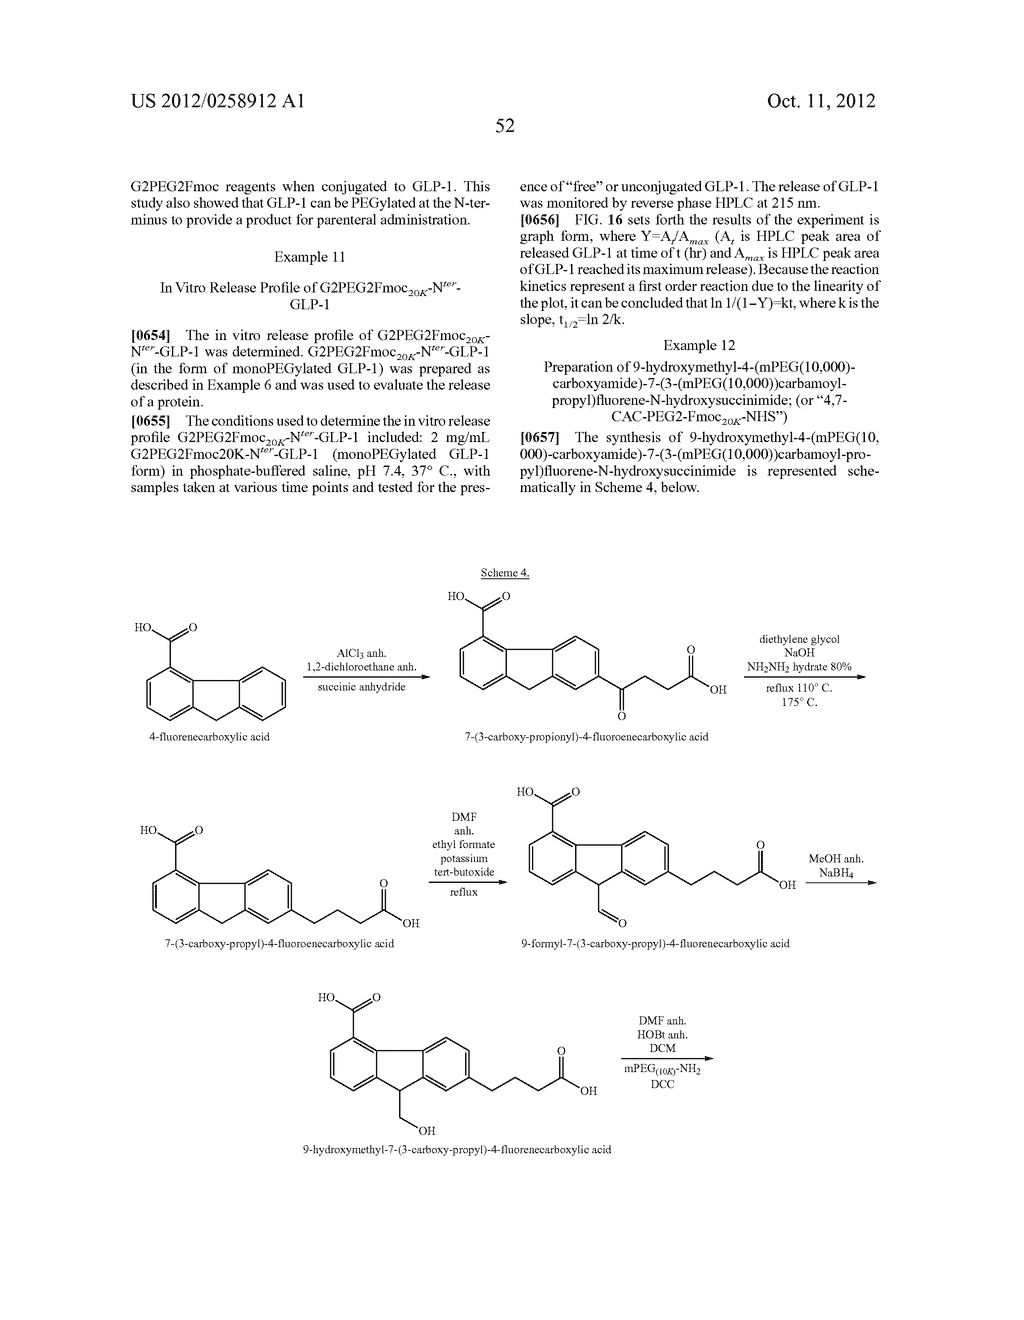 PHARMACEUTICAL COMPOSITIONS AND METHODS FOR DELIVERING SUCH COMPOSITIONS - diagram, schematic, and image 65